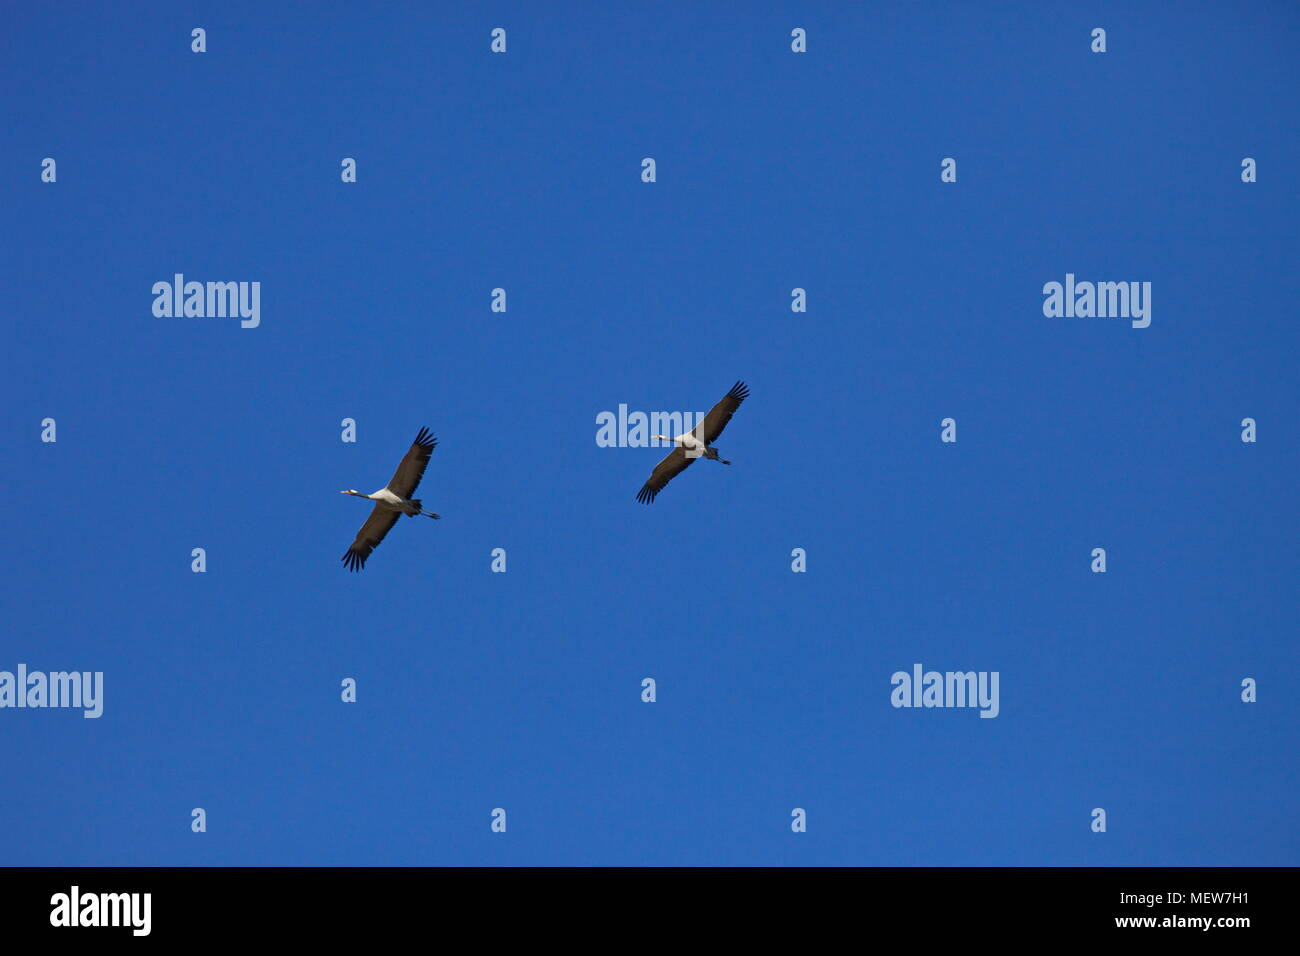 Common cranes (Grus grus) are soaring through the sky on a sunny day in spring. Stock Photo